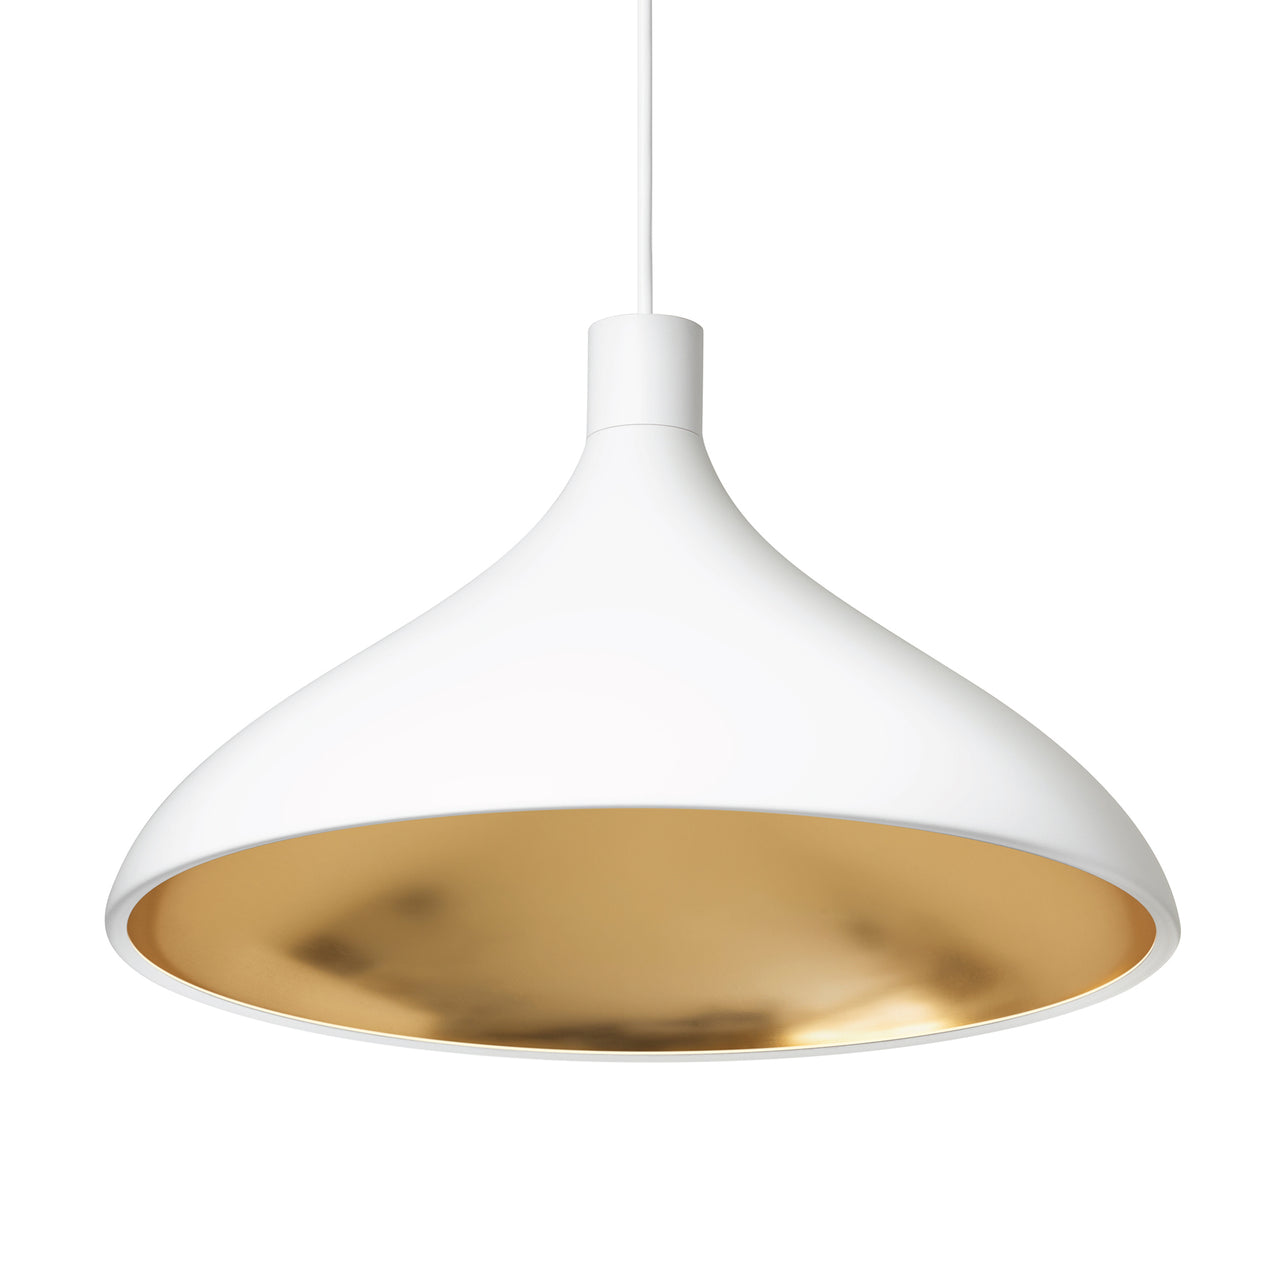 Swell Single Indoor/Outdoor Pendant Light: Wide + White + Brass